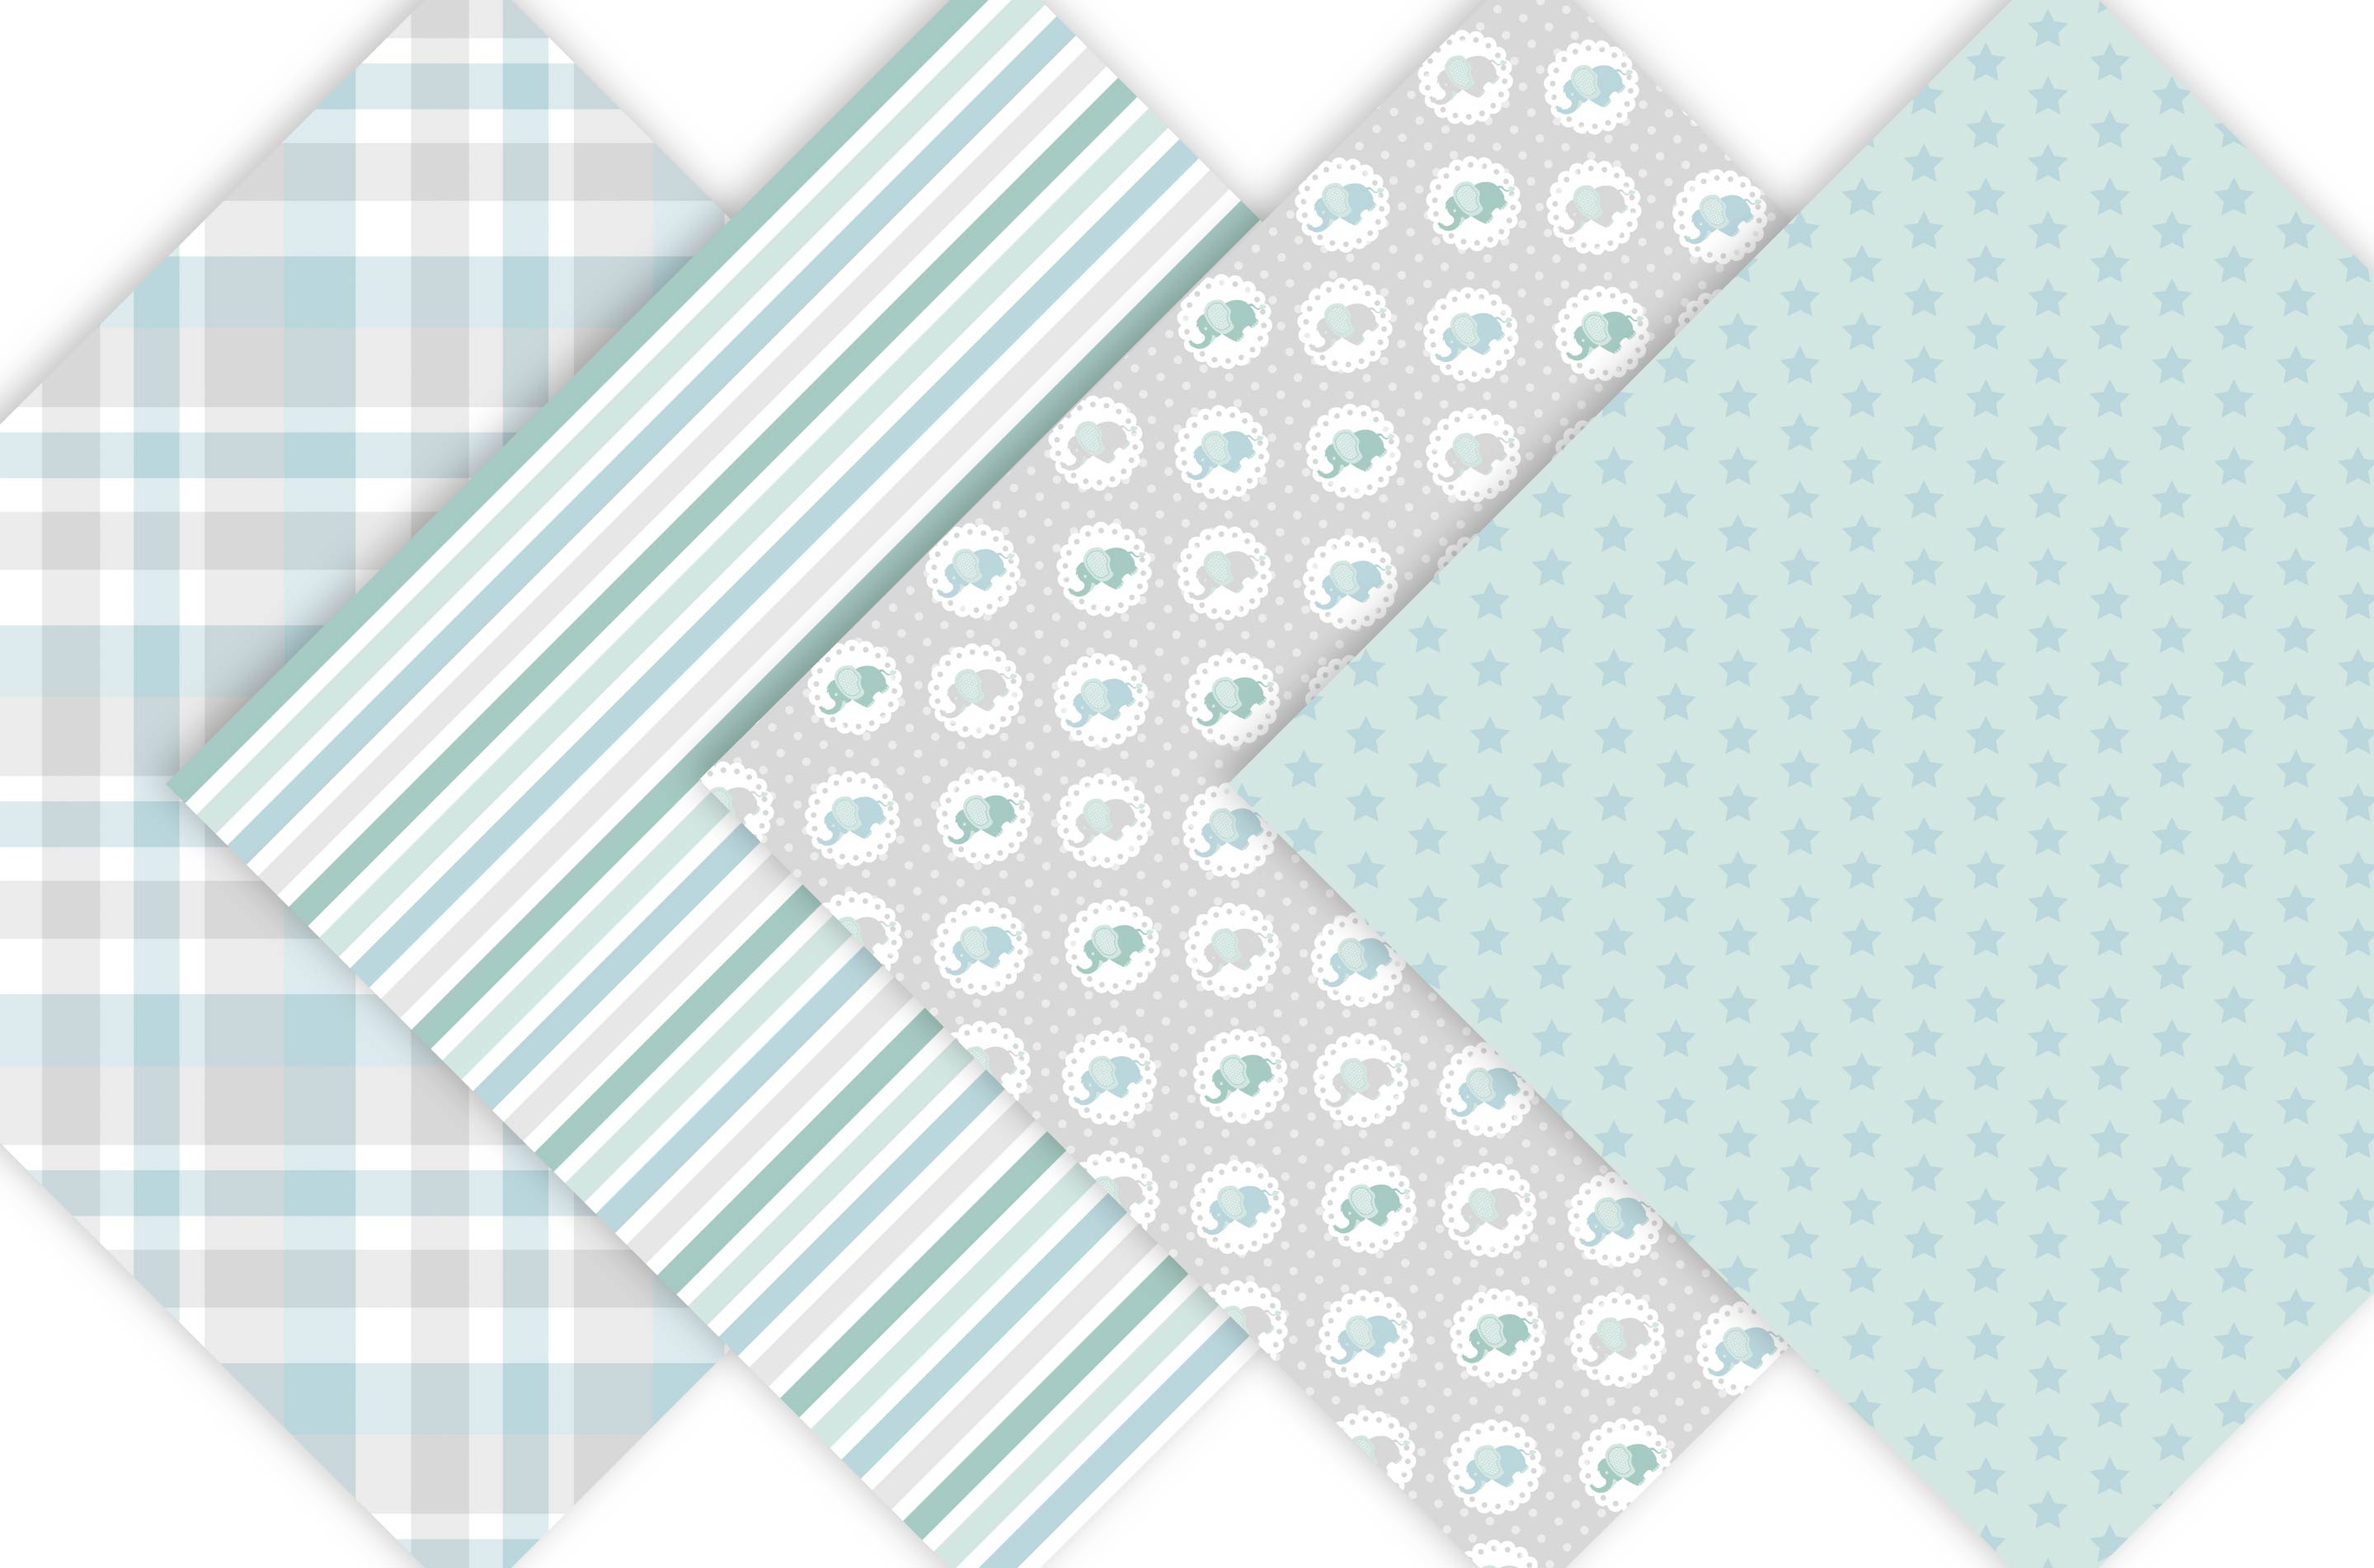 Baby Elephant Digital Paper Patterns - Green example image 3